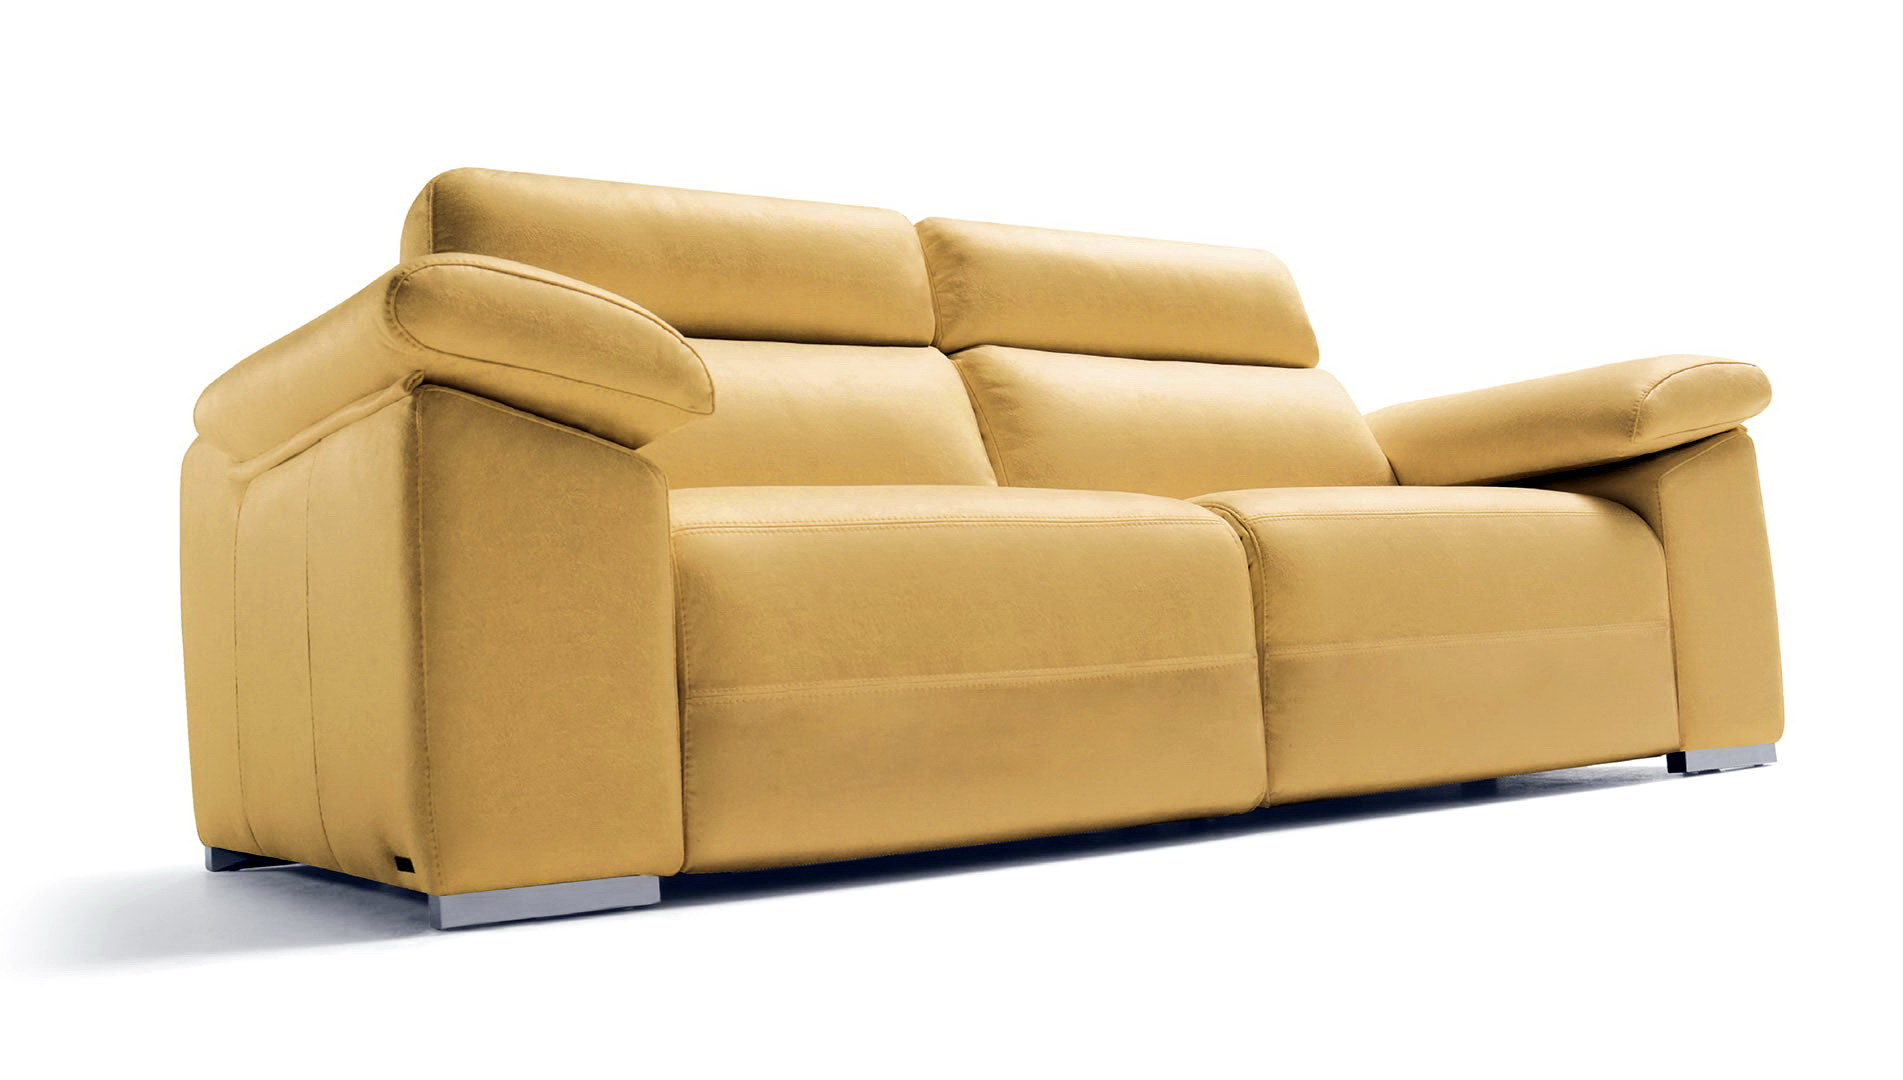 Paula sof modular relax motorizado by paco bautista for Muebles bautista llodio